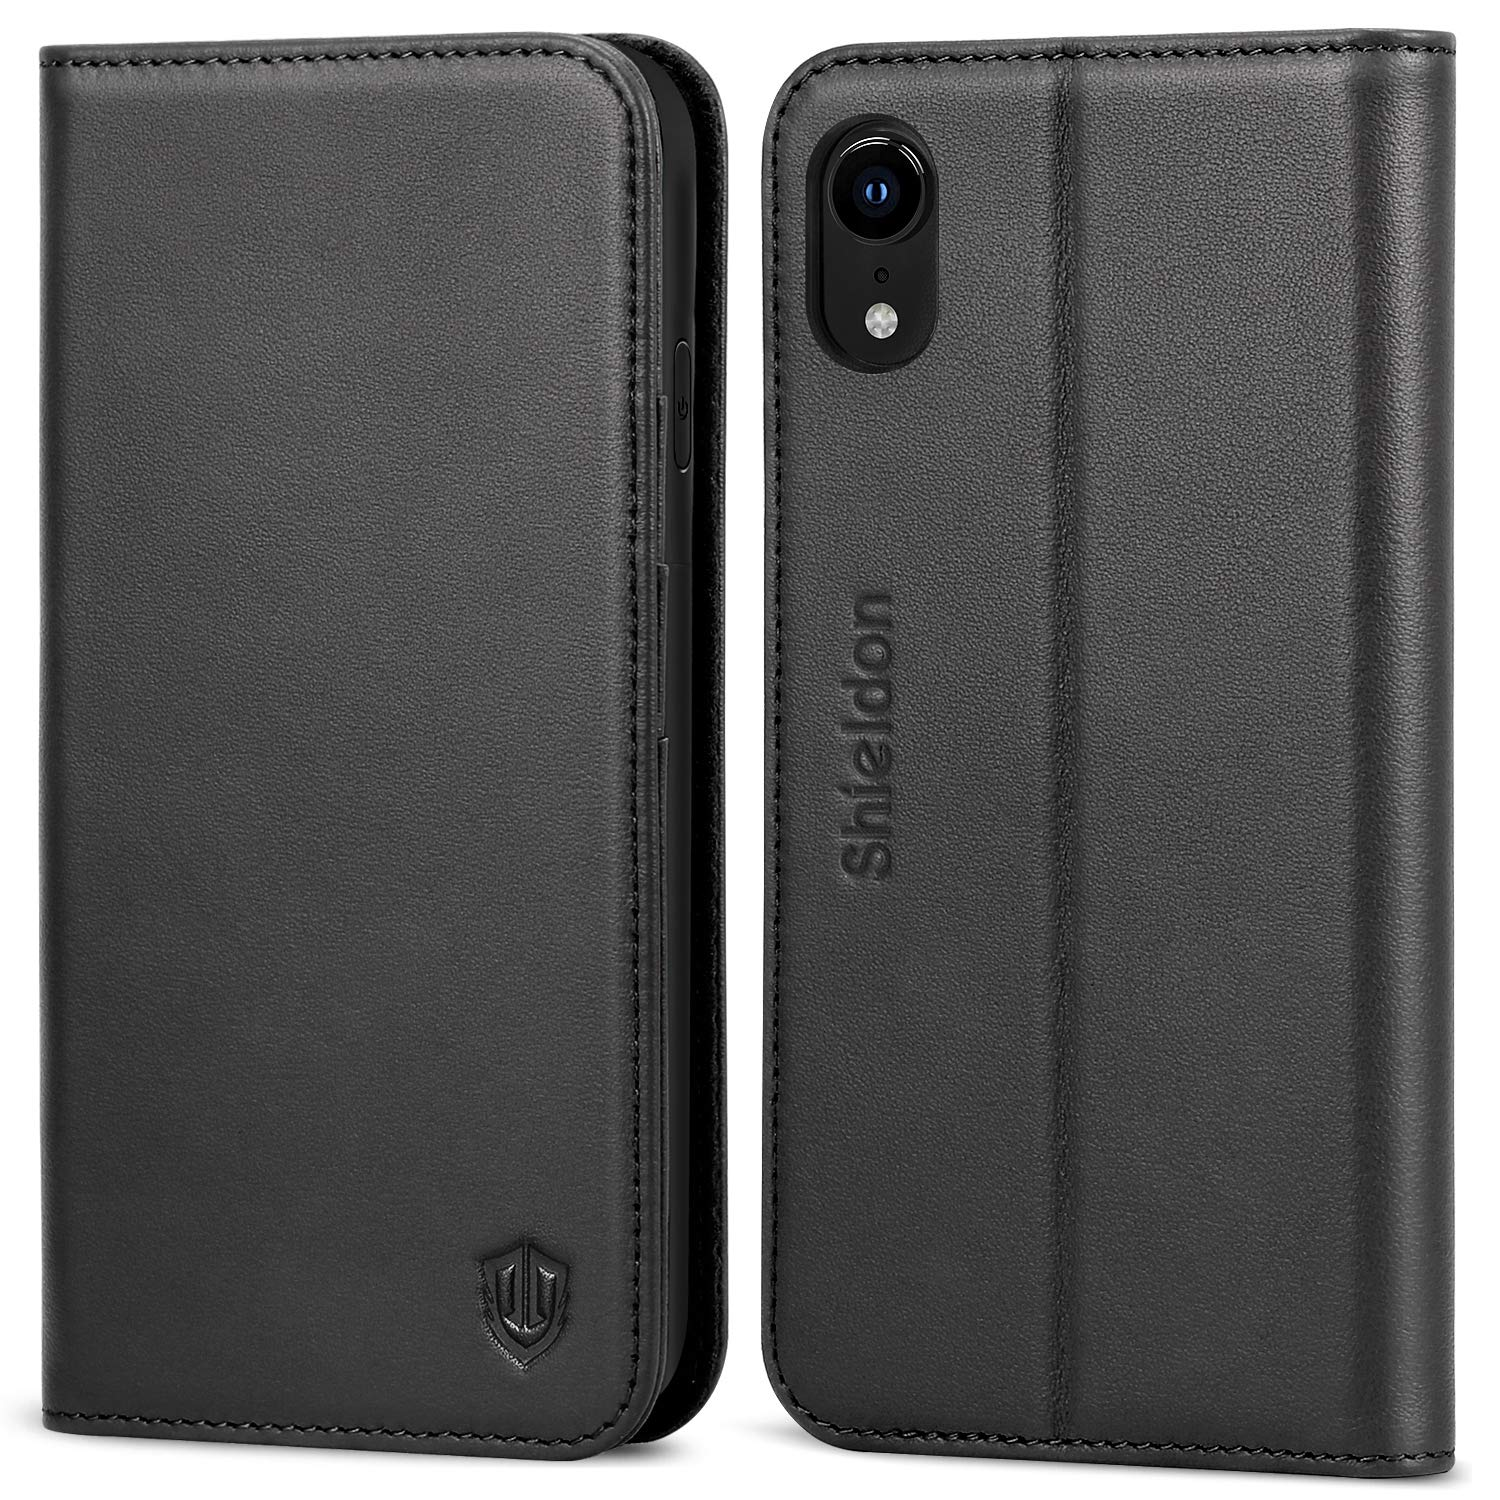 SHIELDON iPhone XR Case, Genuine Leather Flip iPhone XR Wallet Case with RFID Blocking Credit Card Holder Magnetic Closure Kickstand Compatible with iPhone XR (6.1 Inch 2018) - Black by SHIELDON